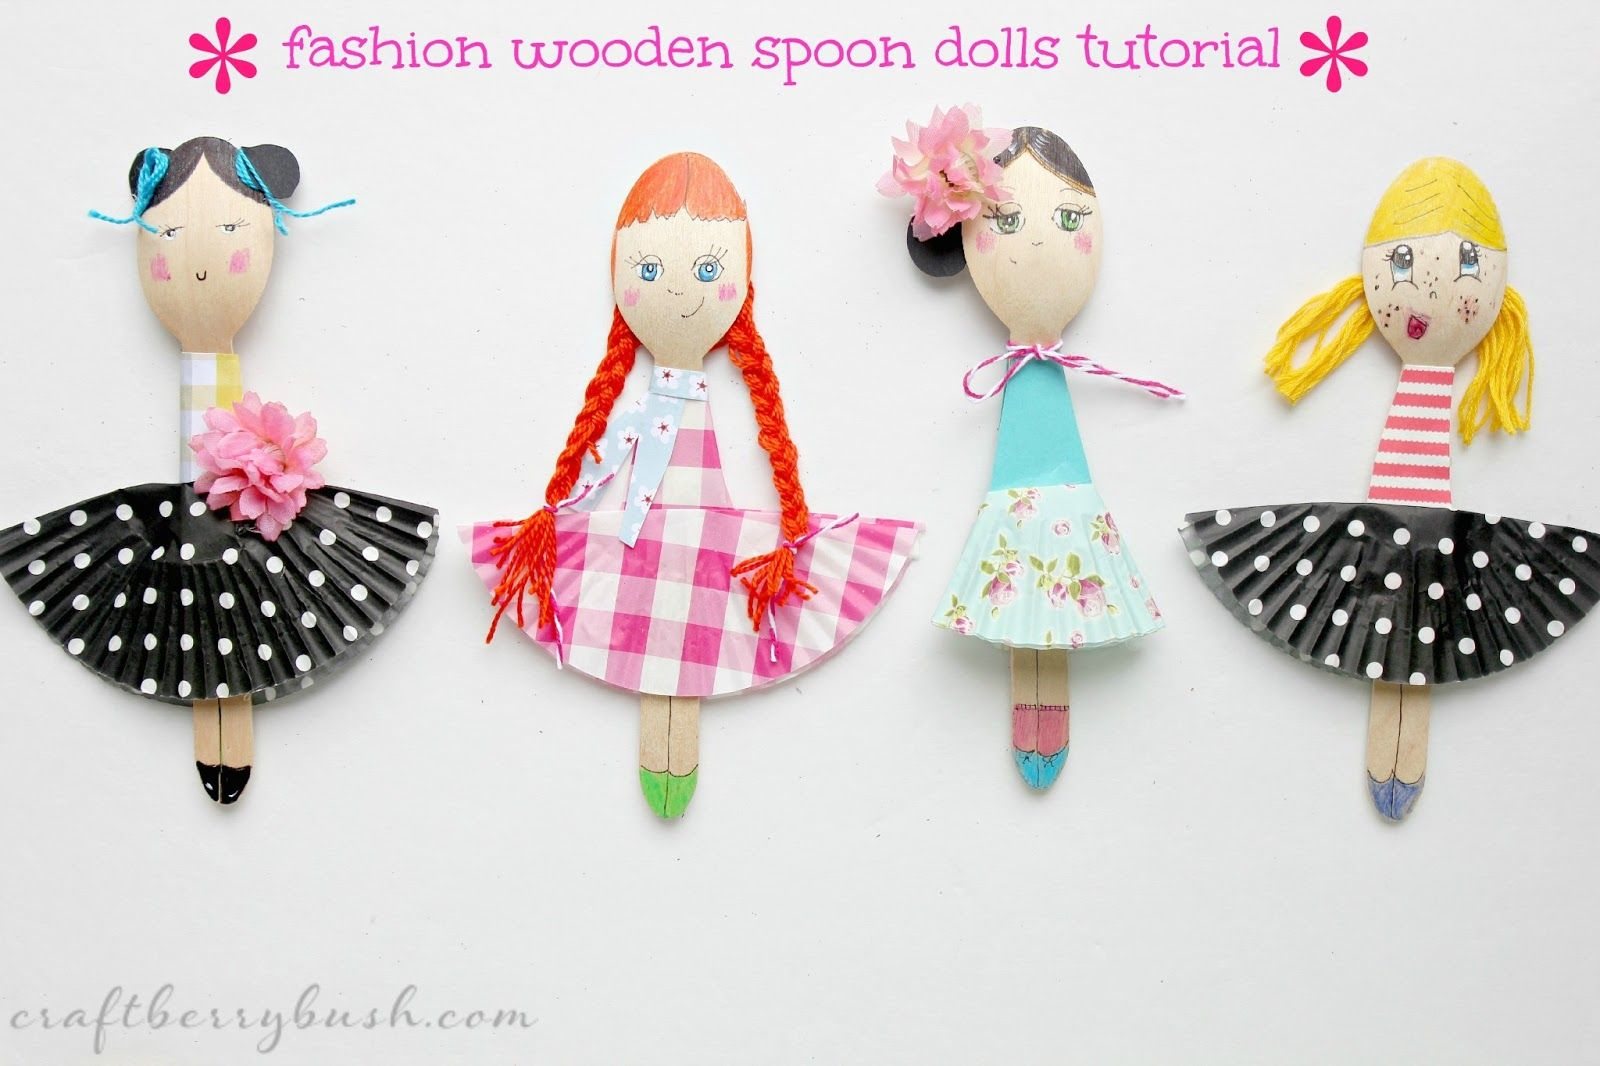 Wooden Spoon Paper Dolls So Cute Cool Stuff For Kids Wooden